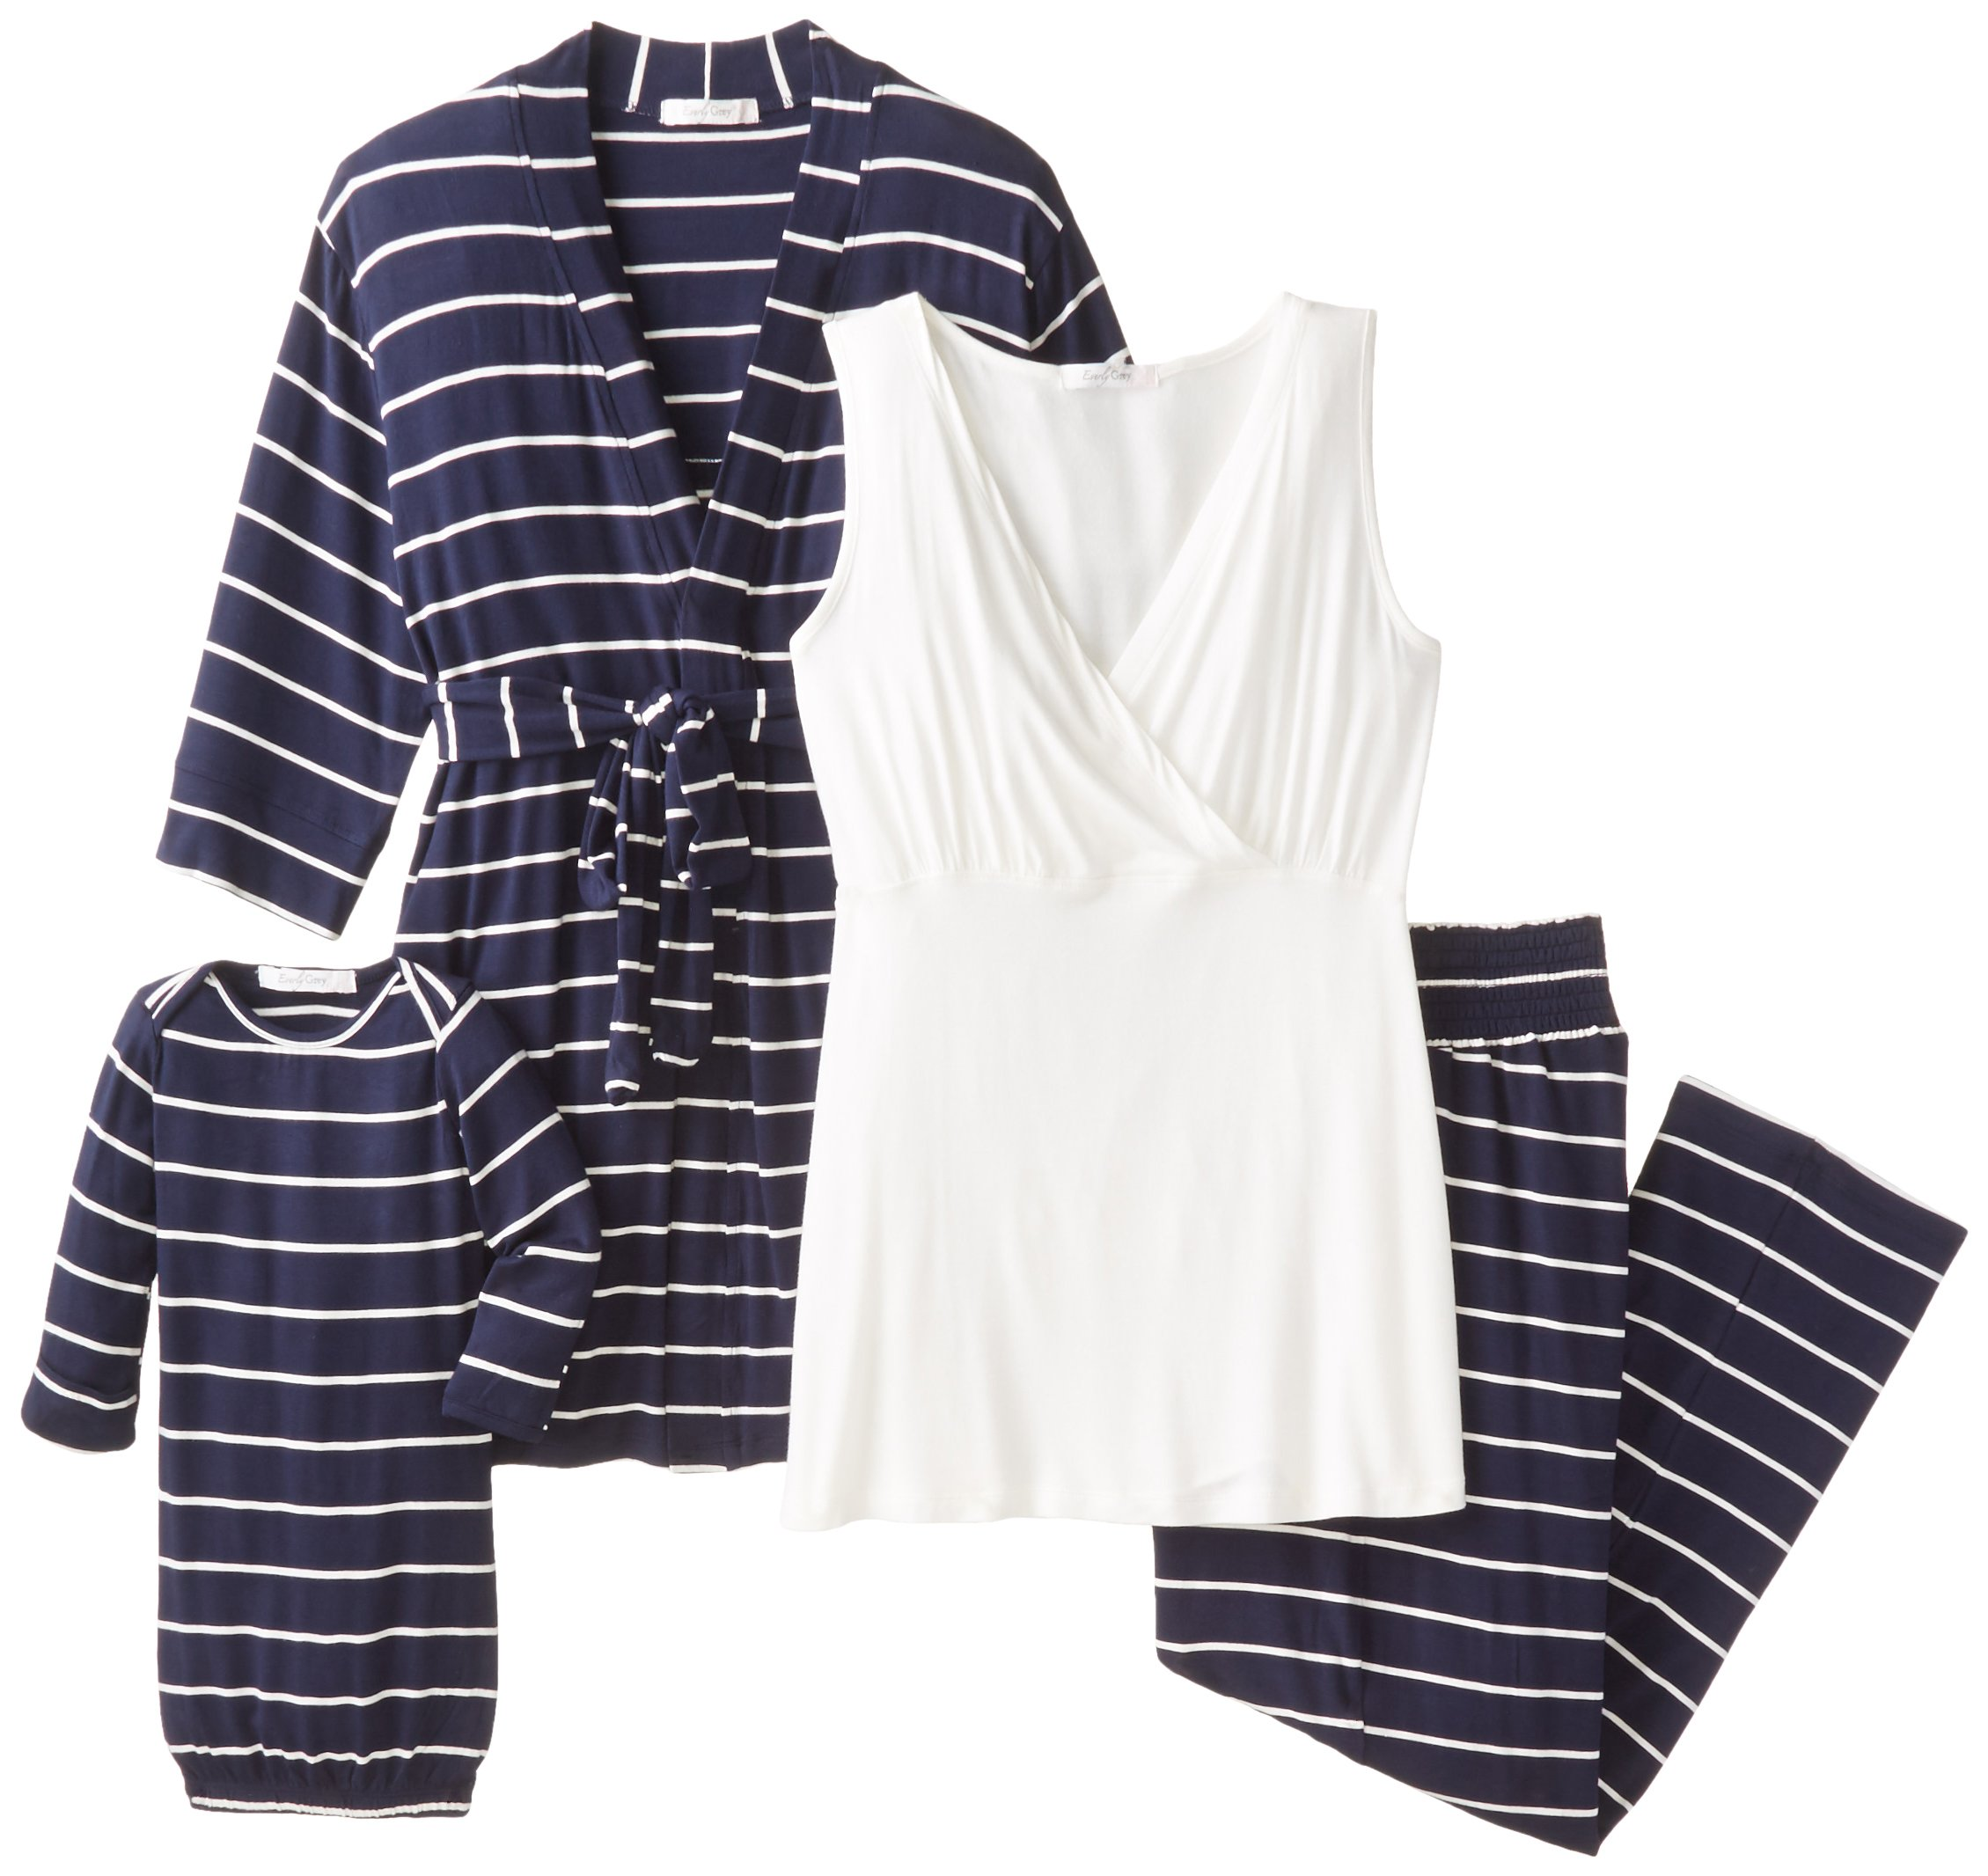 Everly Grey Women's Roxanne 5 Piece Maternity and Nursing PJ Pant Set with Robe and Matching Baby Gown, Navy, Extra Small